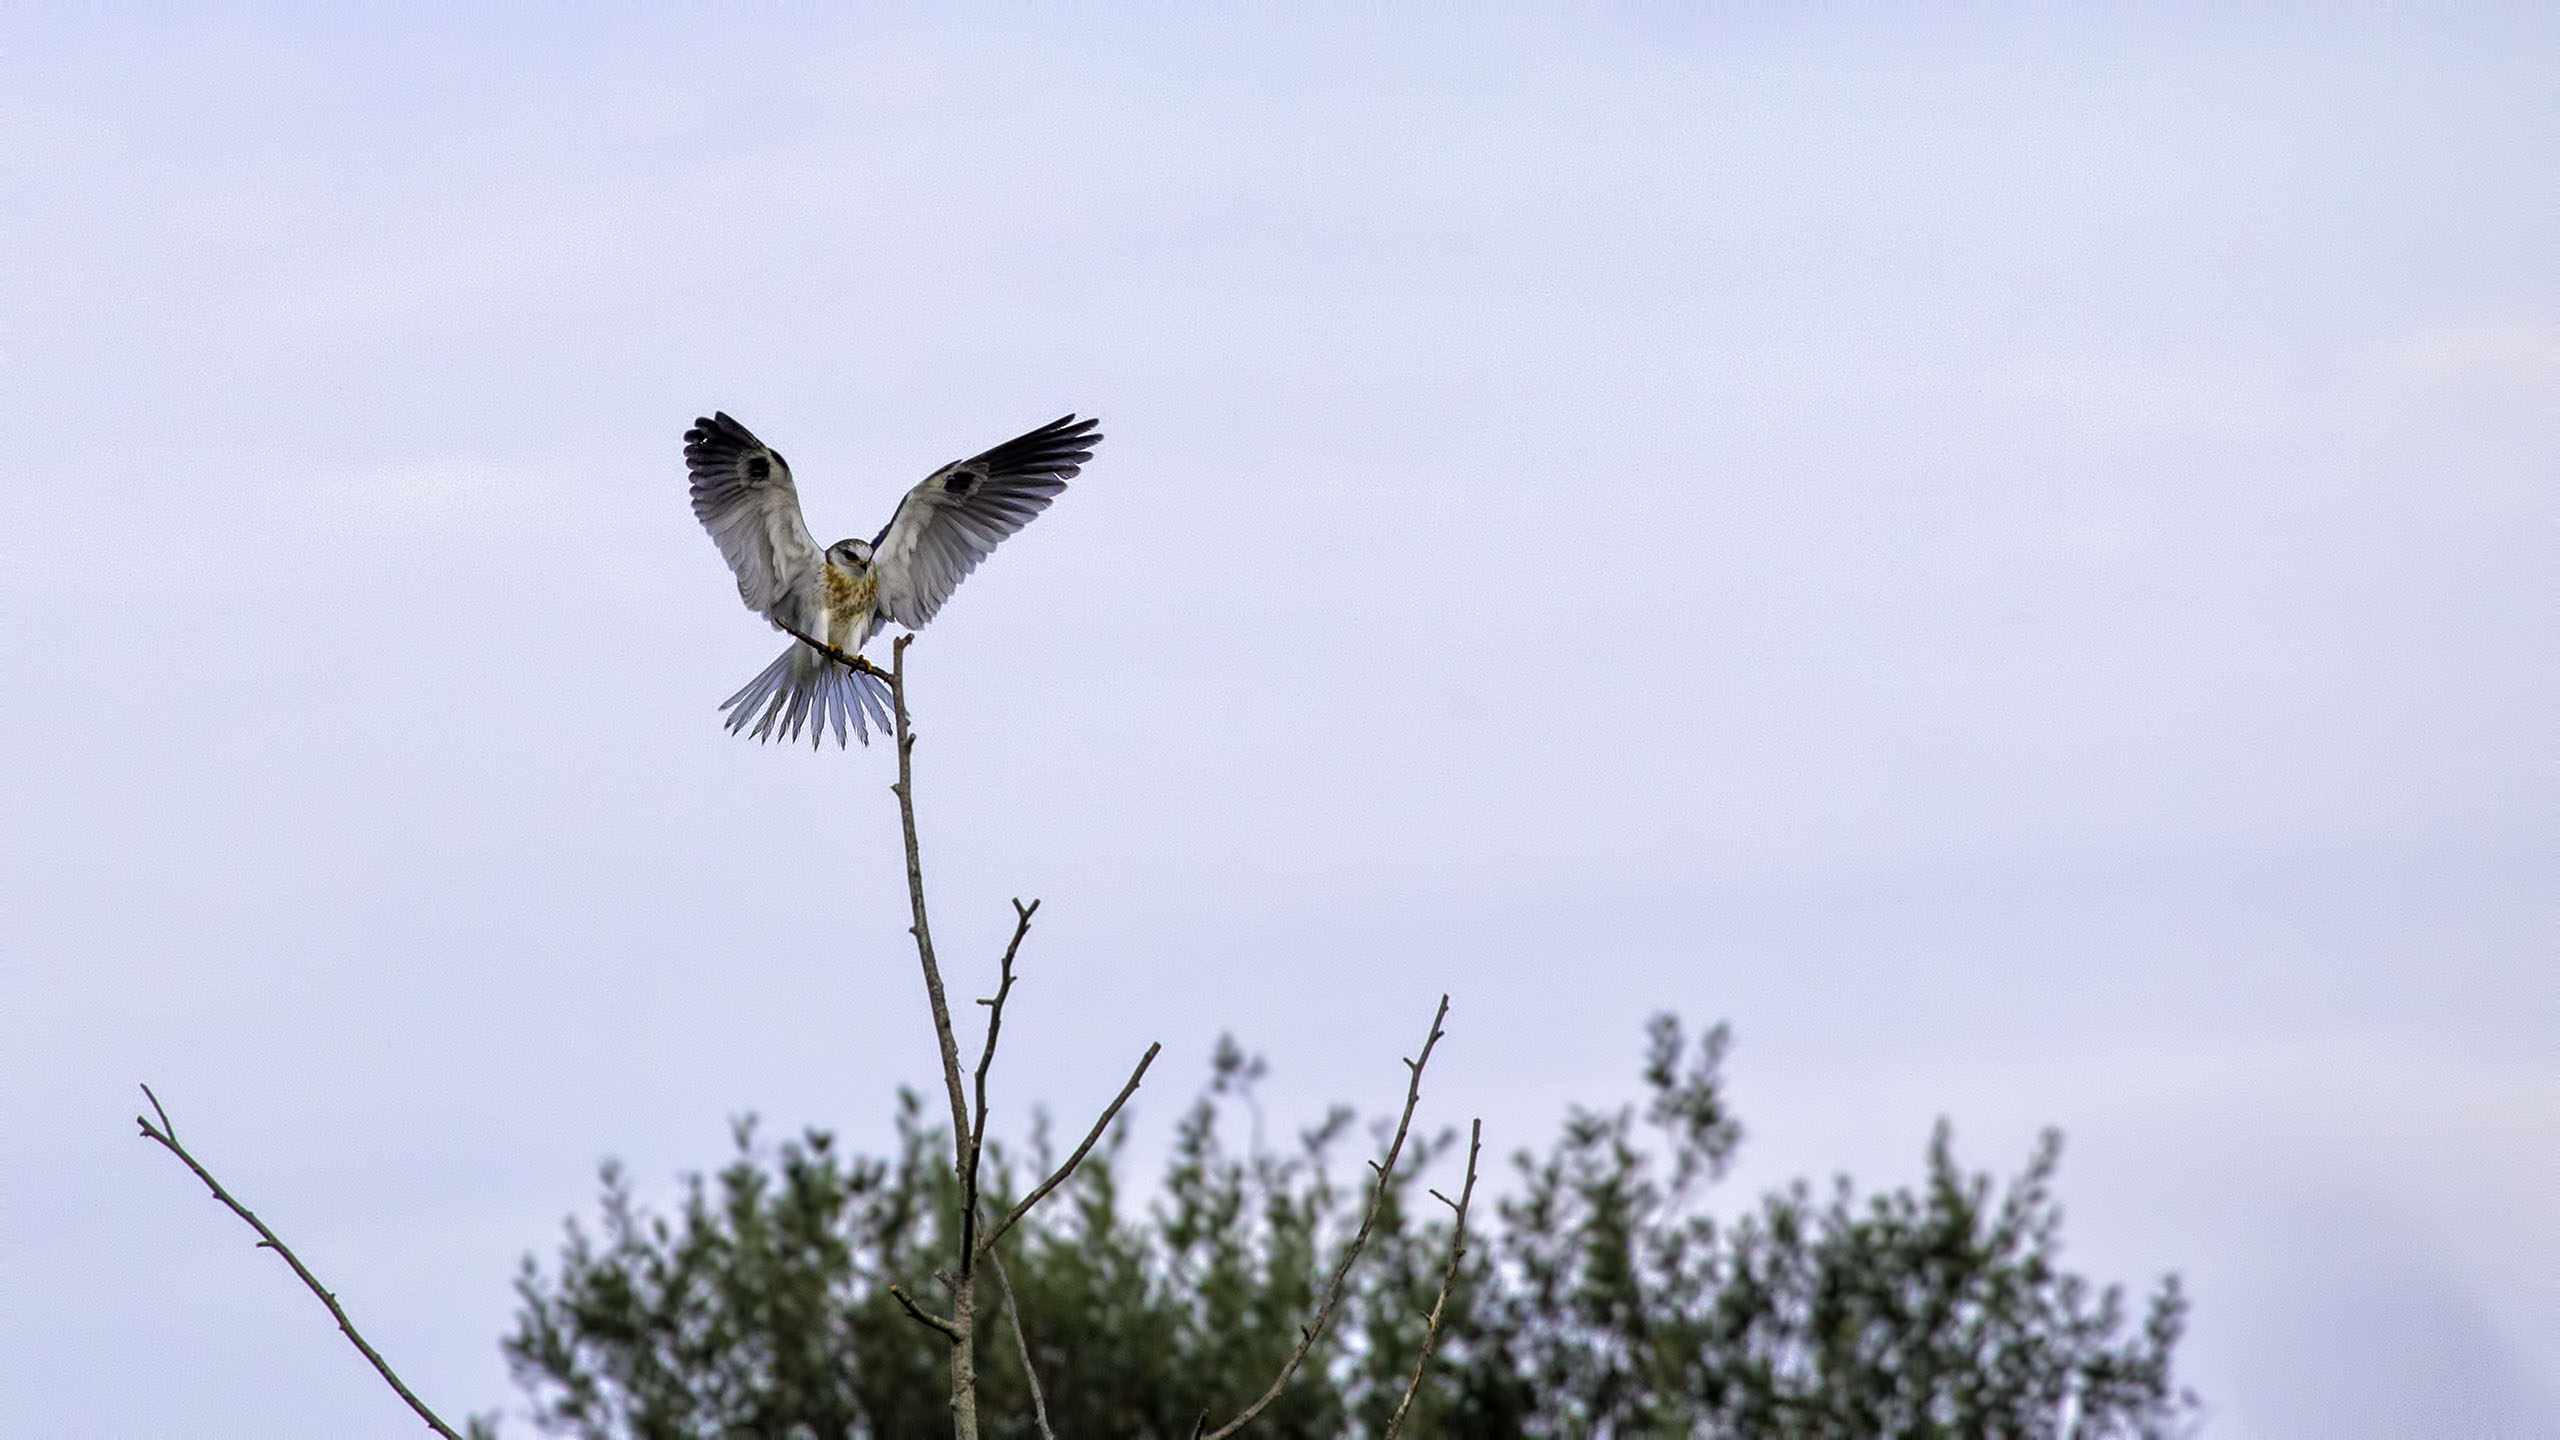 A White-tailed Kite at Humbolt National Wildlife Refuge in Eureka, CA